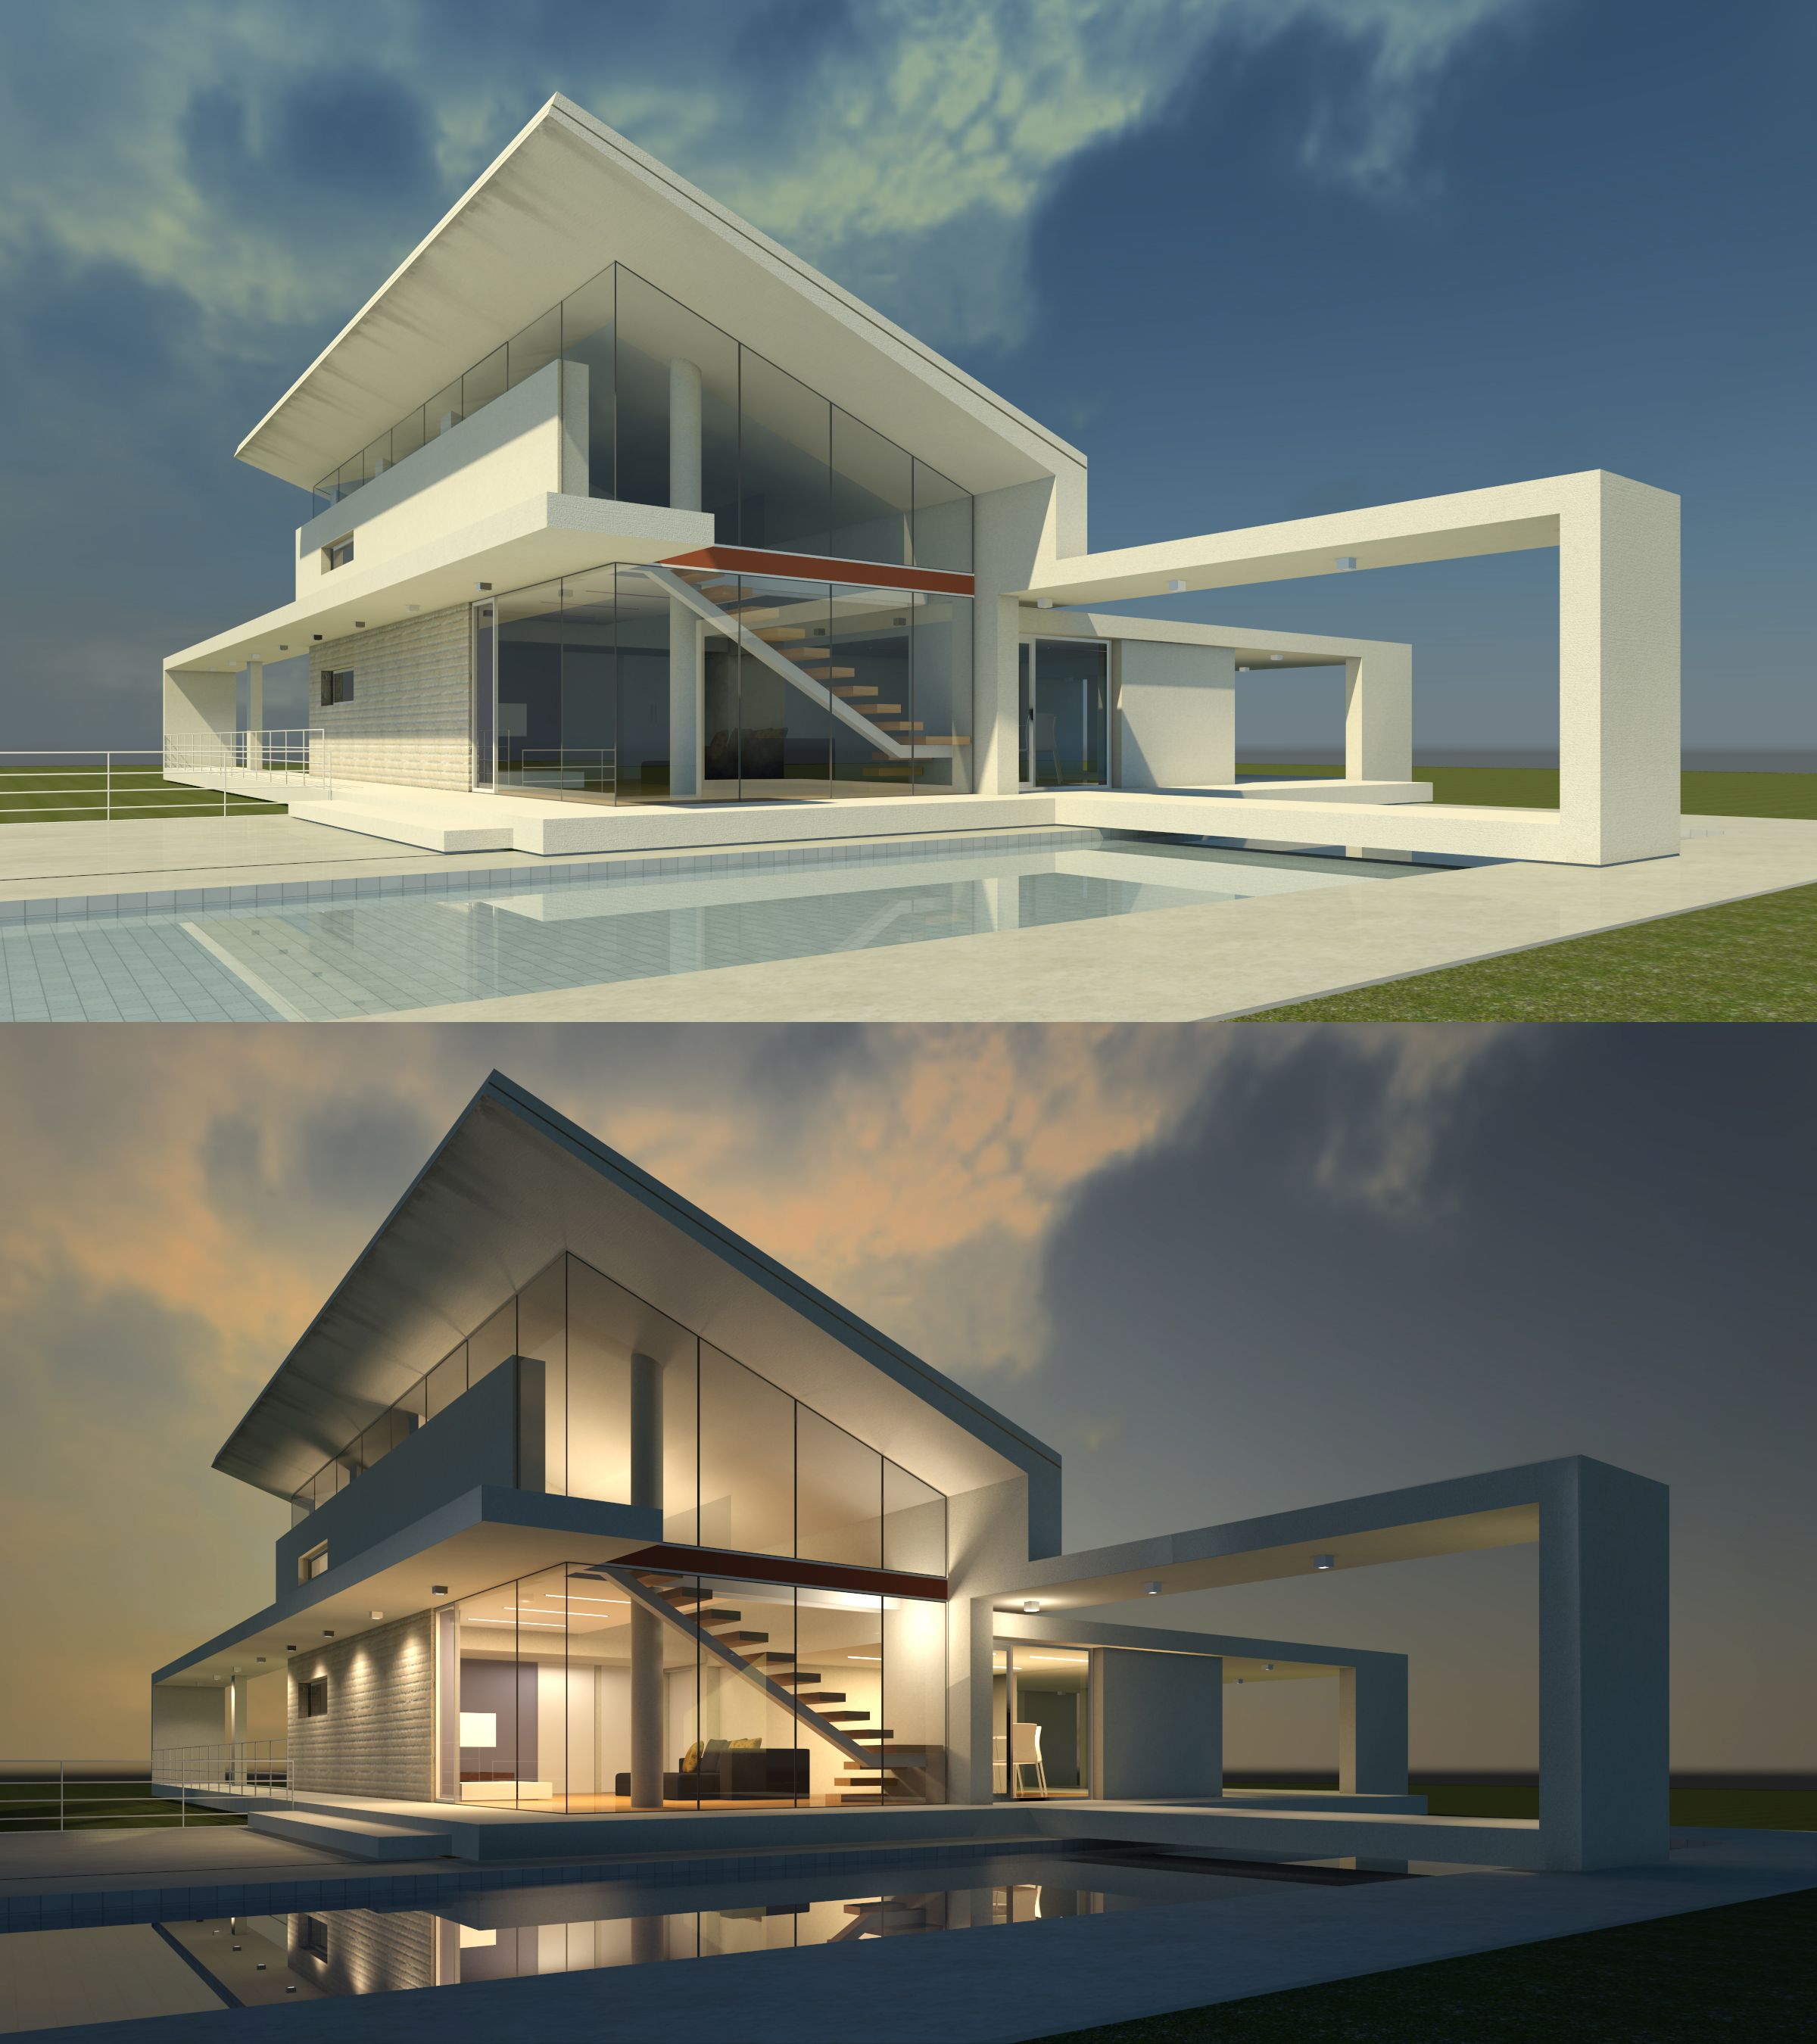 3ds max house design 28 images home interior design for 3ds max design